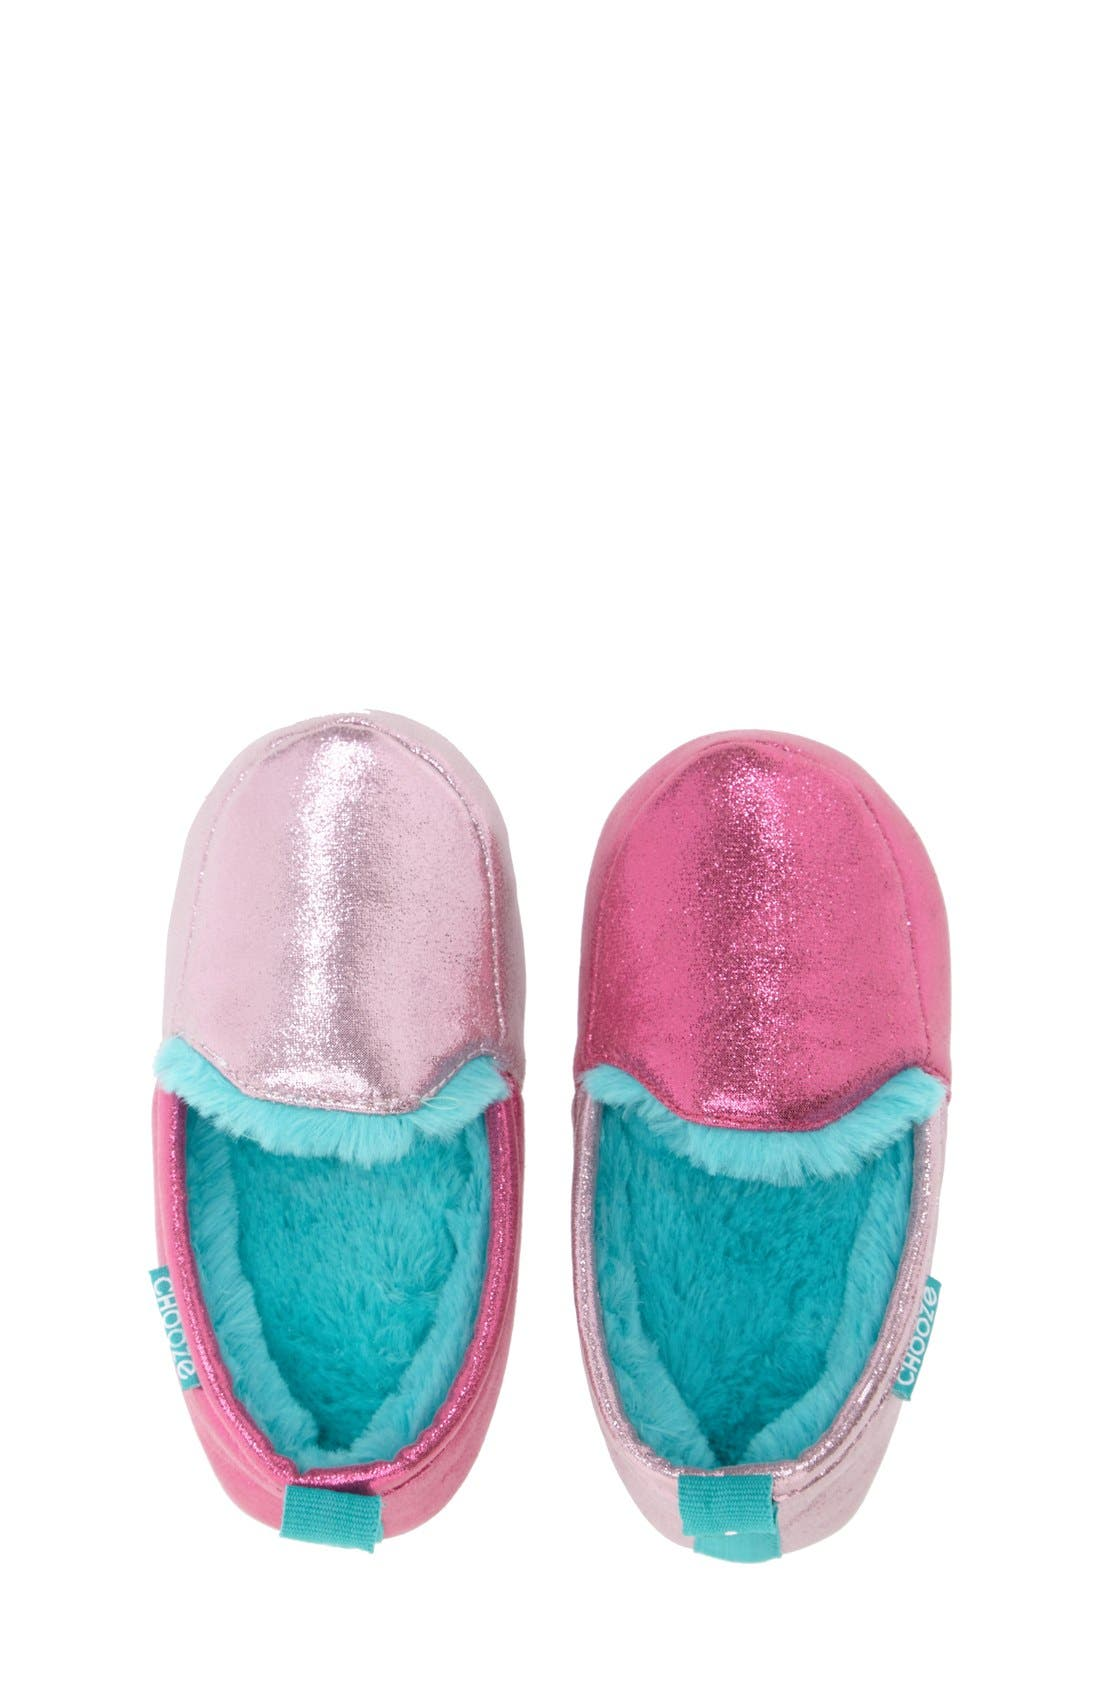 'Slumber' Slippers,                             Alternate thumbnail 45, color,